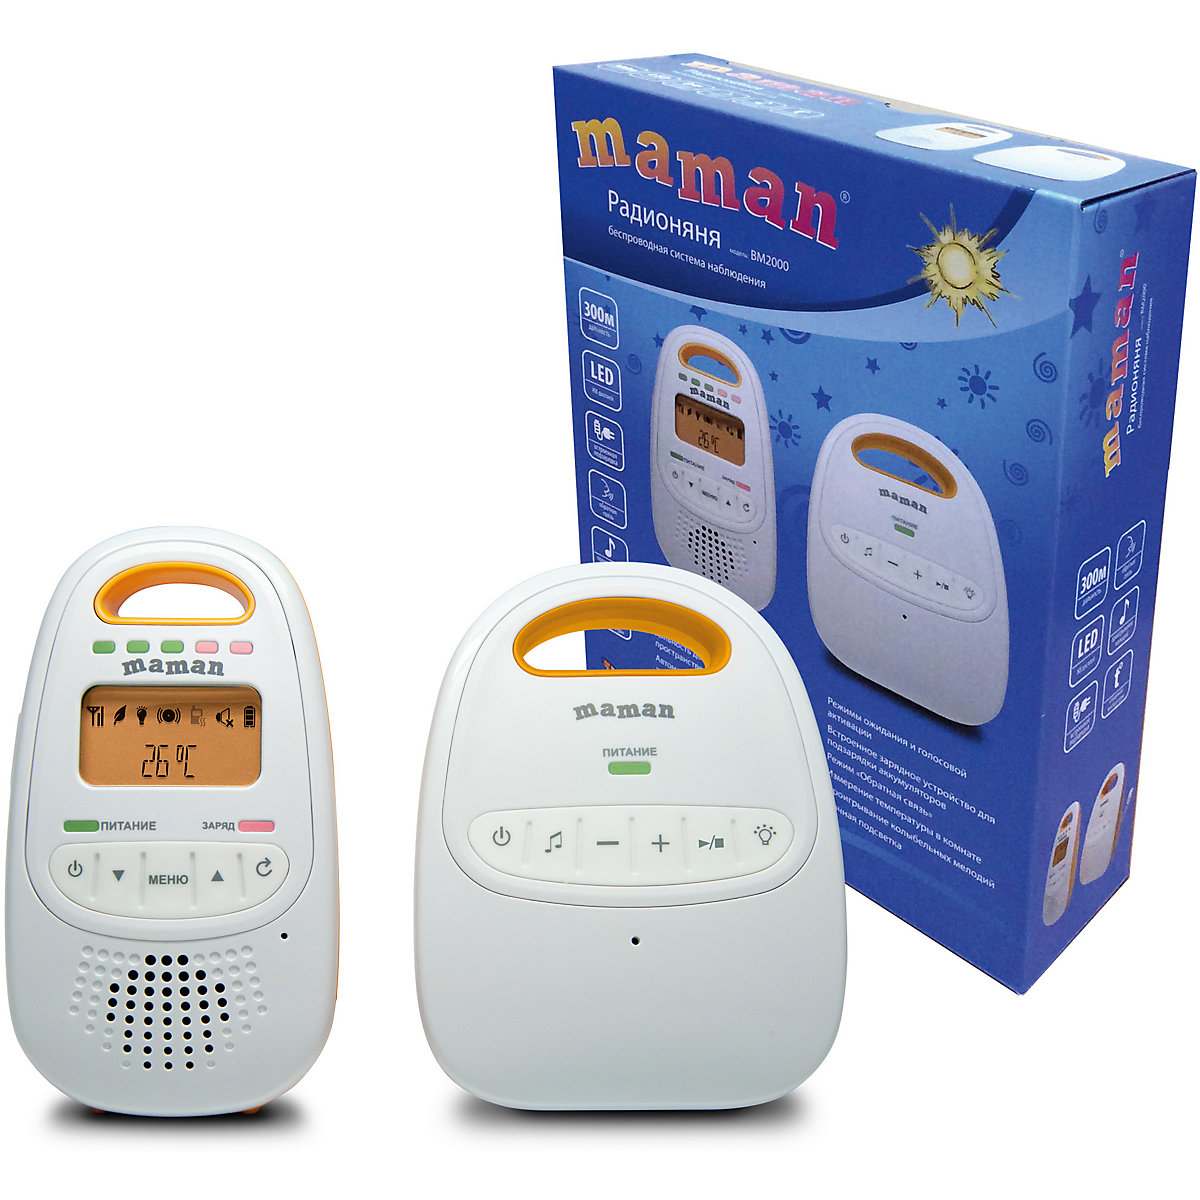 Baby Sleeping Monitors MAMAN 7142168 Safety baby monitor control for children baby monitor switel bcc38